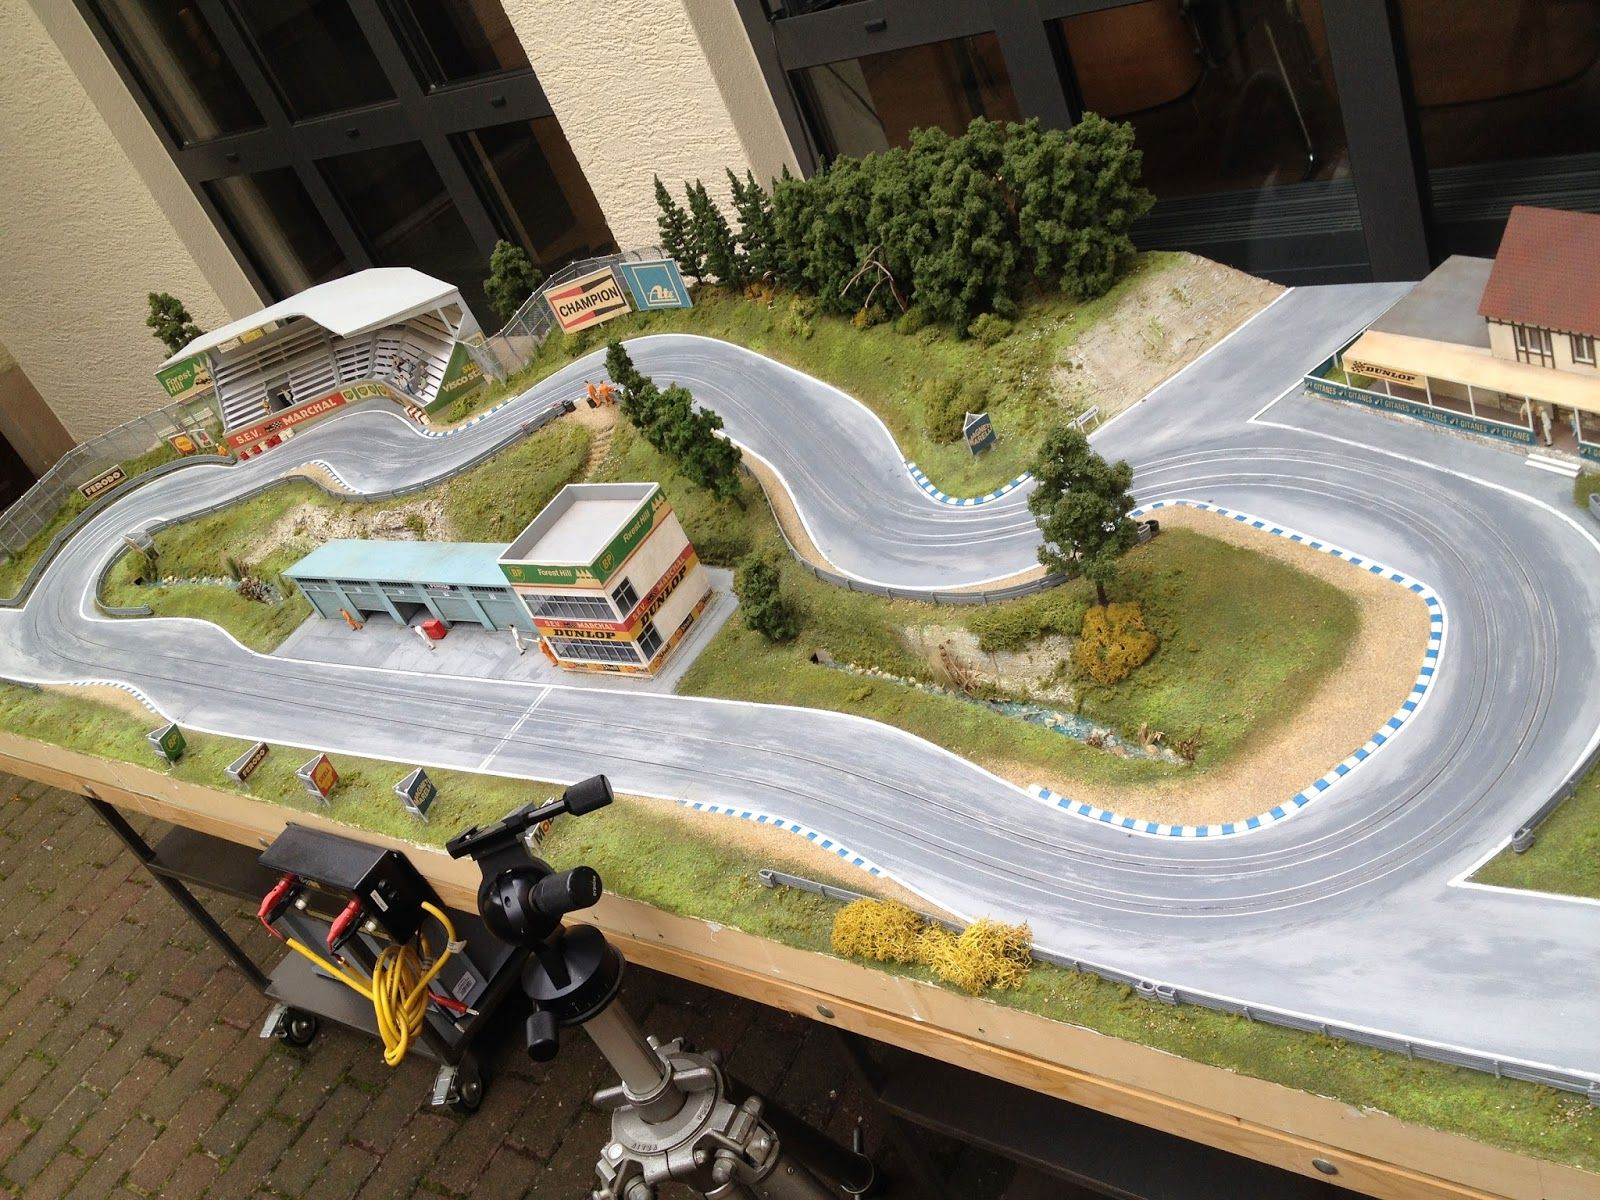 h0 Race Track in true scale with extended scenery Slot